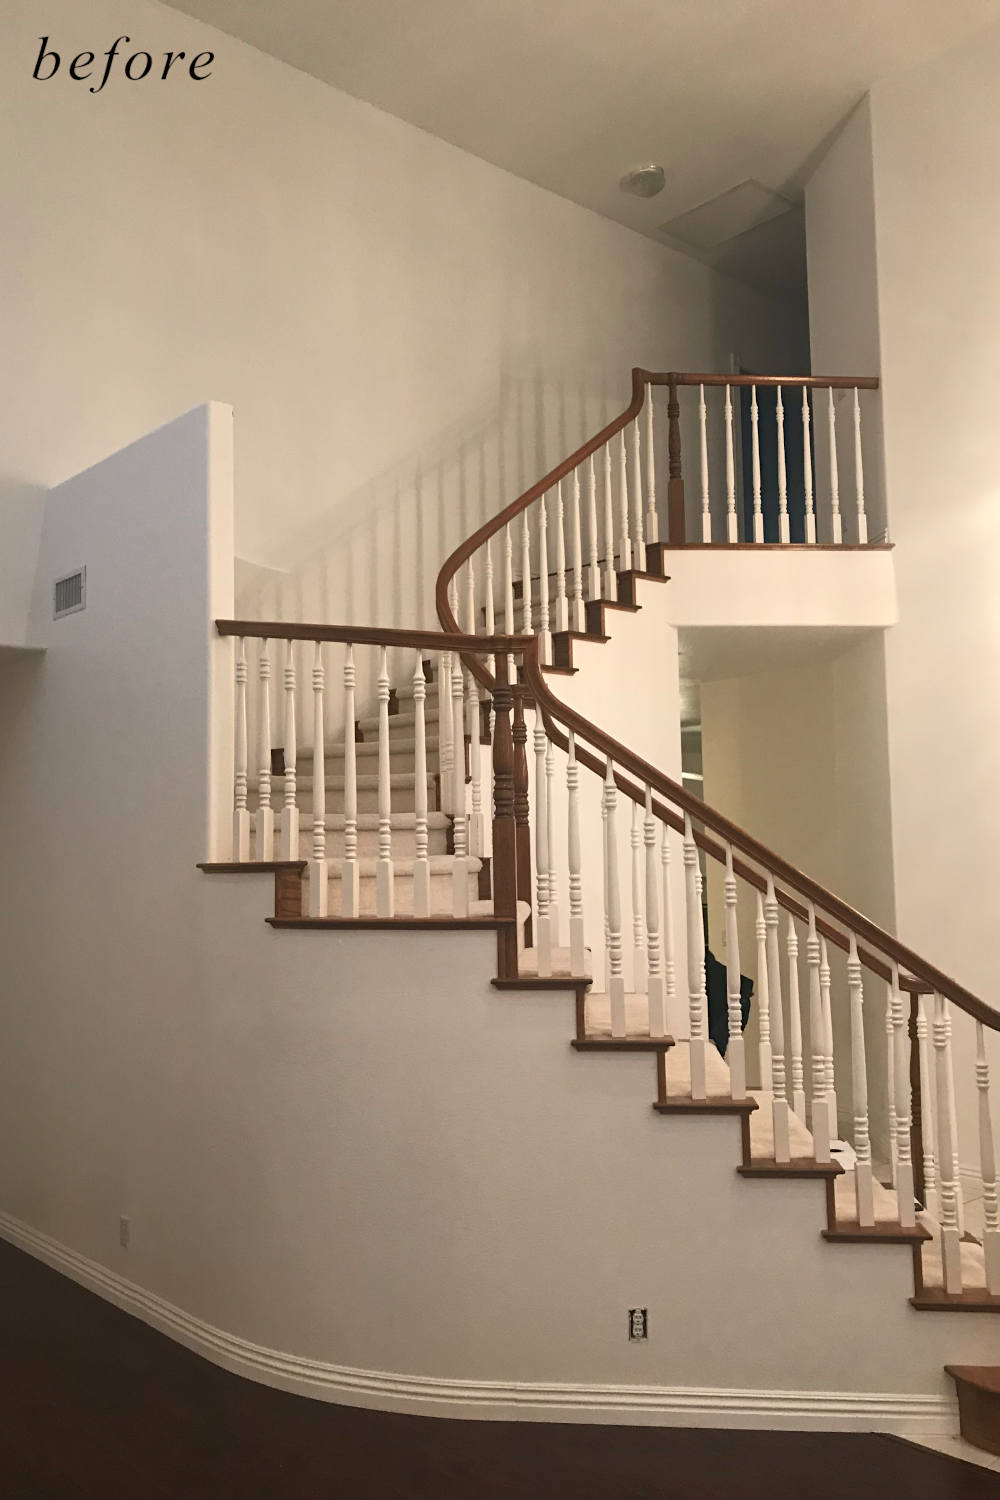 Before remodel image: dated and standard home staircase with old carpet and basic railing.